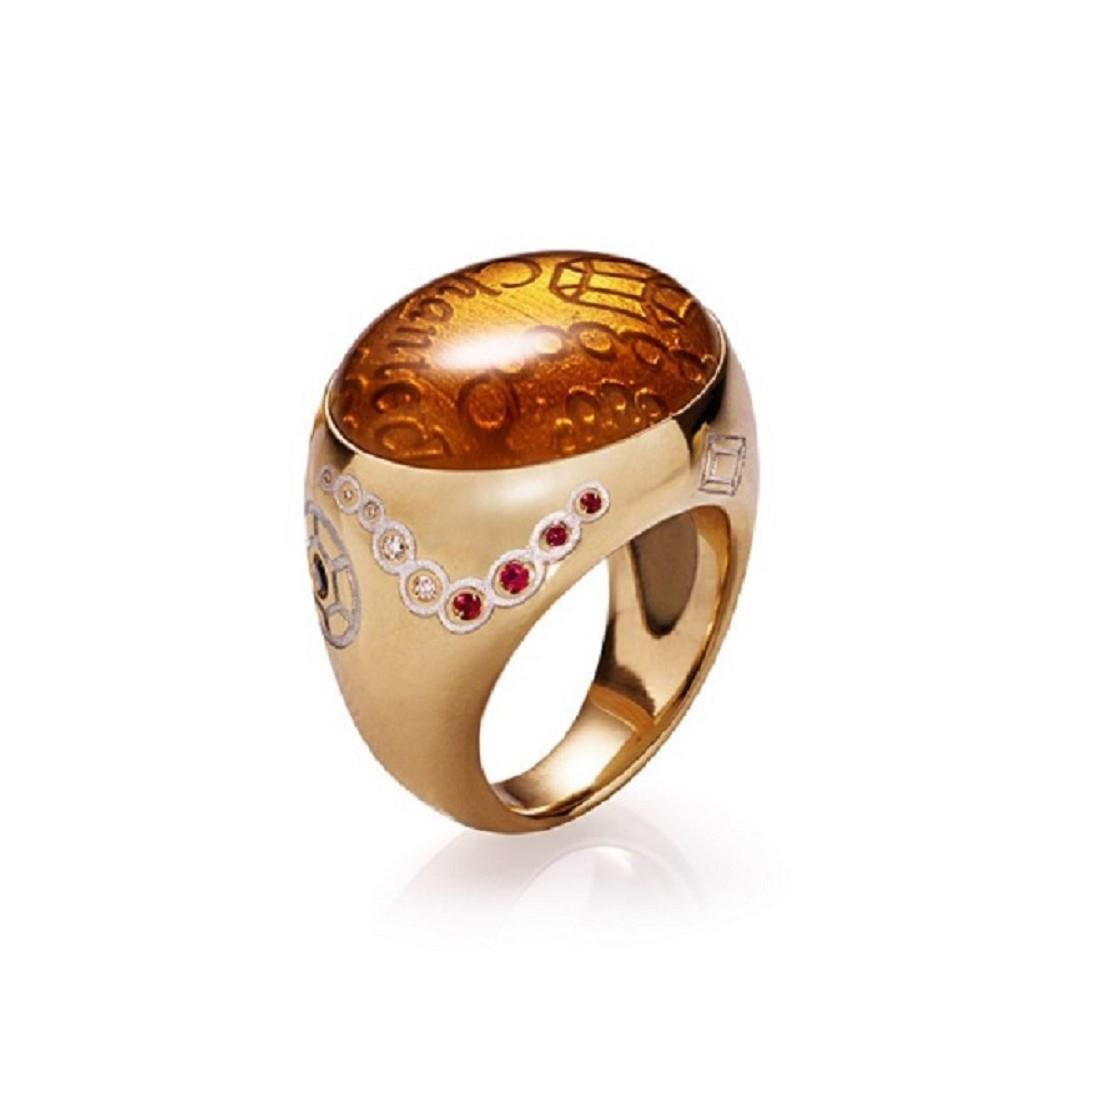 Ring with diamonds and precious stones - CHANTECLER